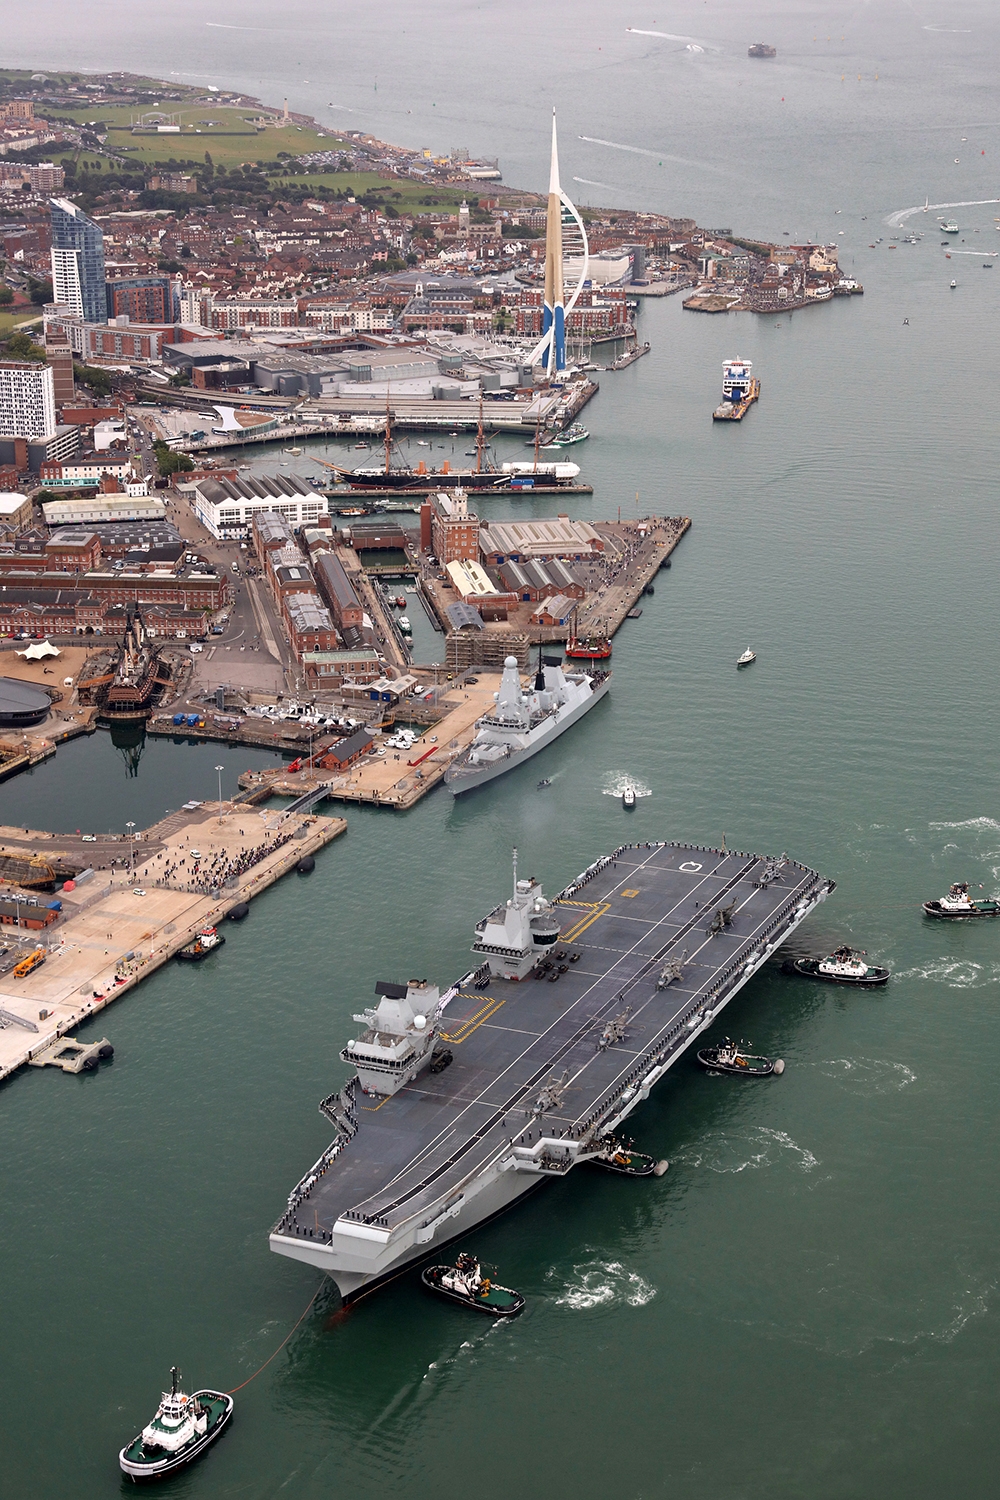 HMS Queen Elizabeth sails into her home port of Portsmouth for the first time, design and engineering by Tex Special Projects.